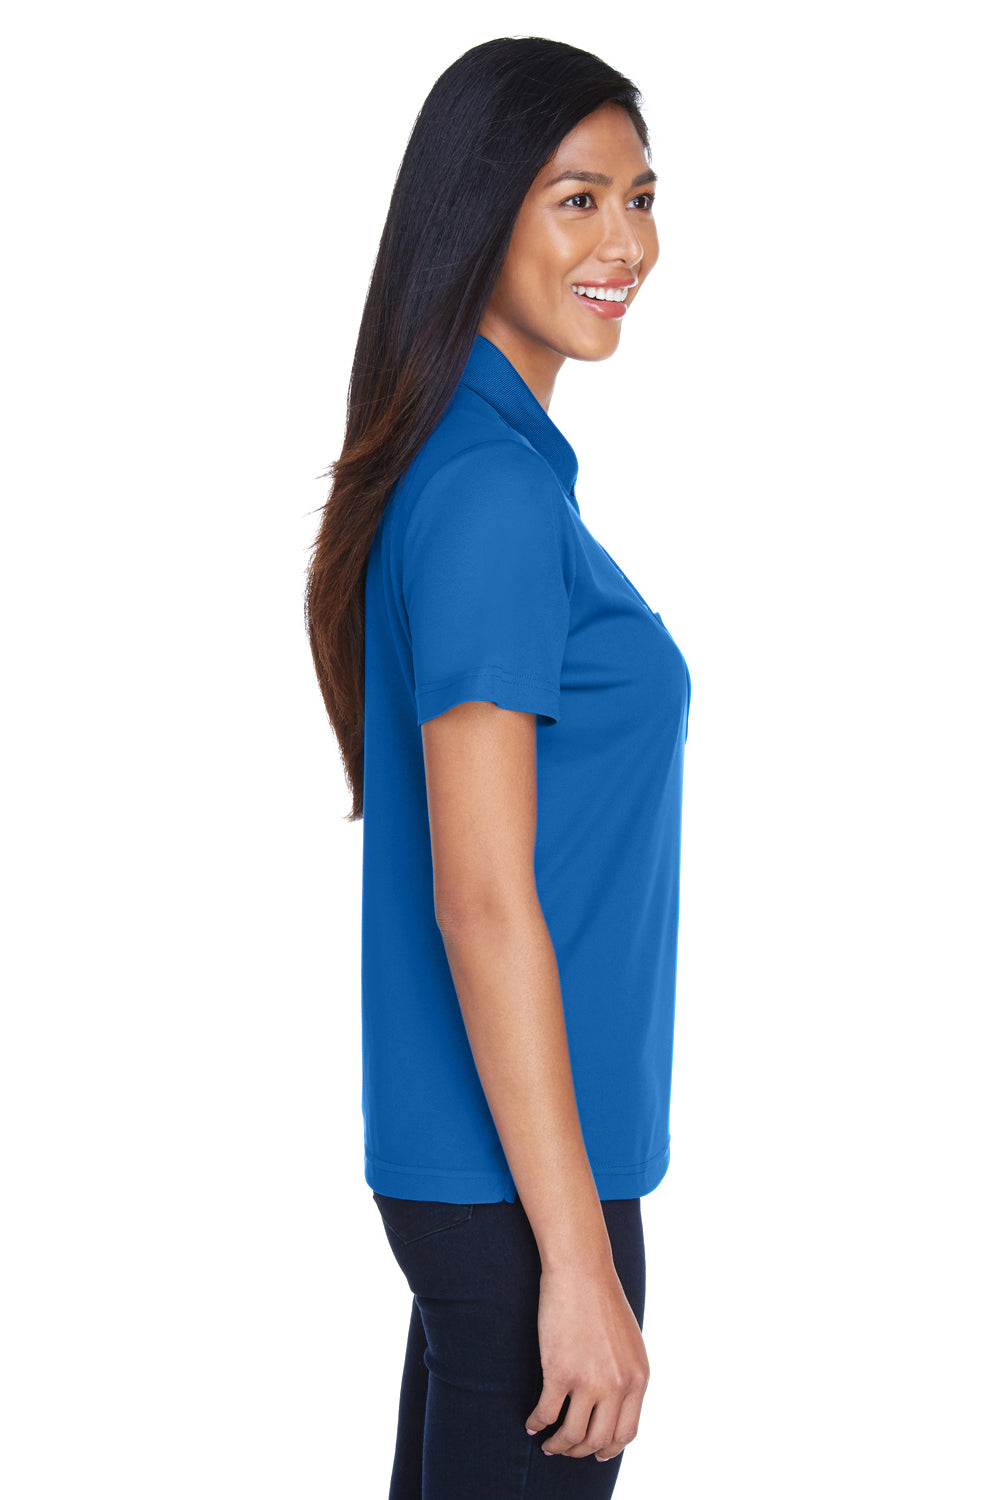 Core 365 78181P Womens Origin Performance Moisture Wicking Short Sleeve Polo Shirt w/ Pocket Royal Blue Side